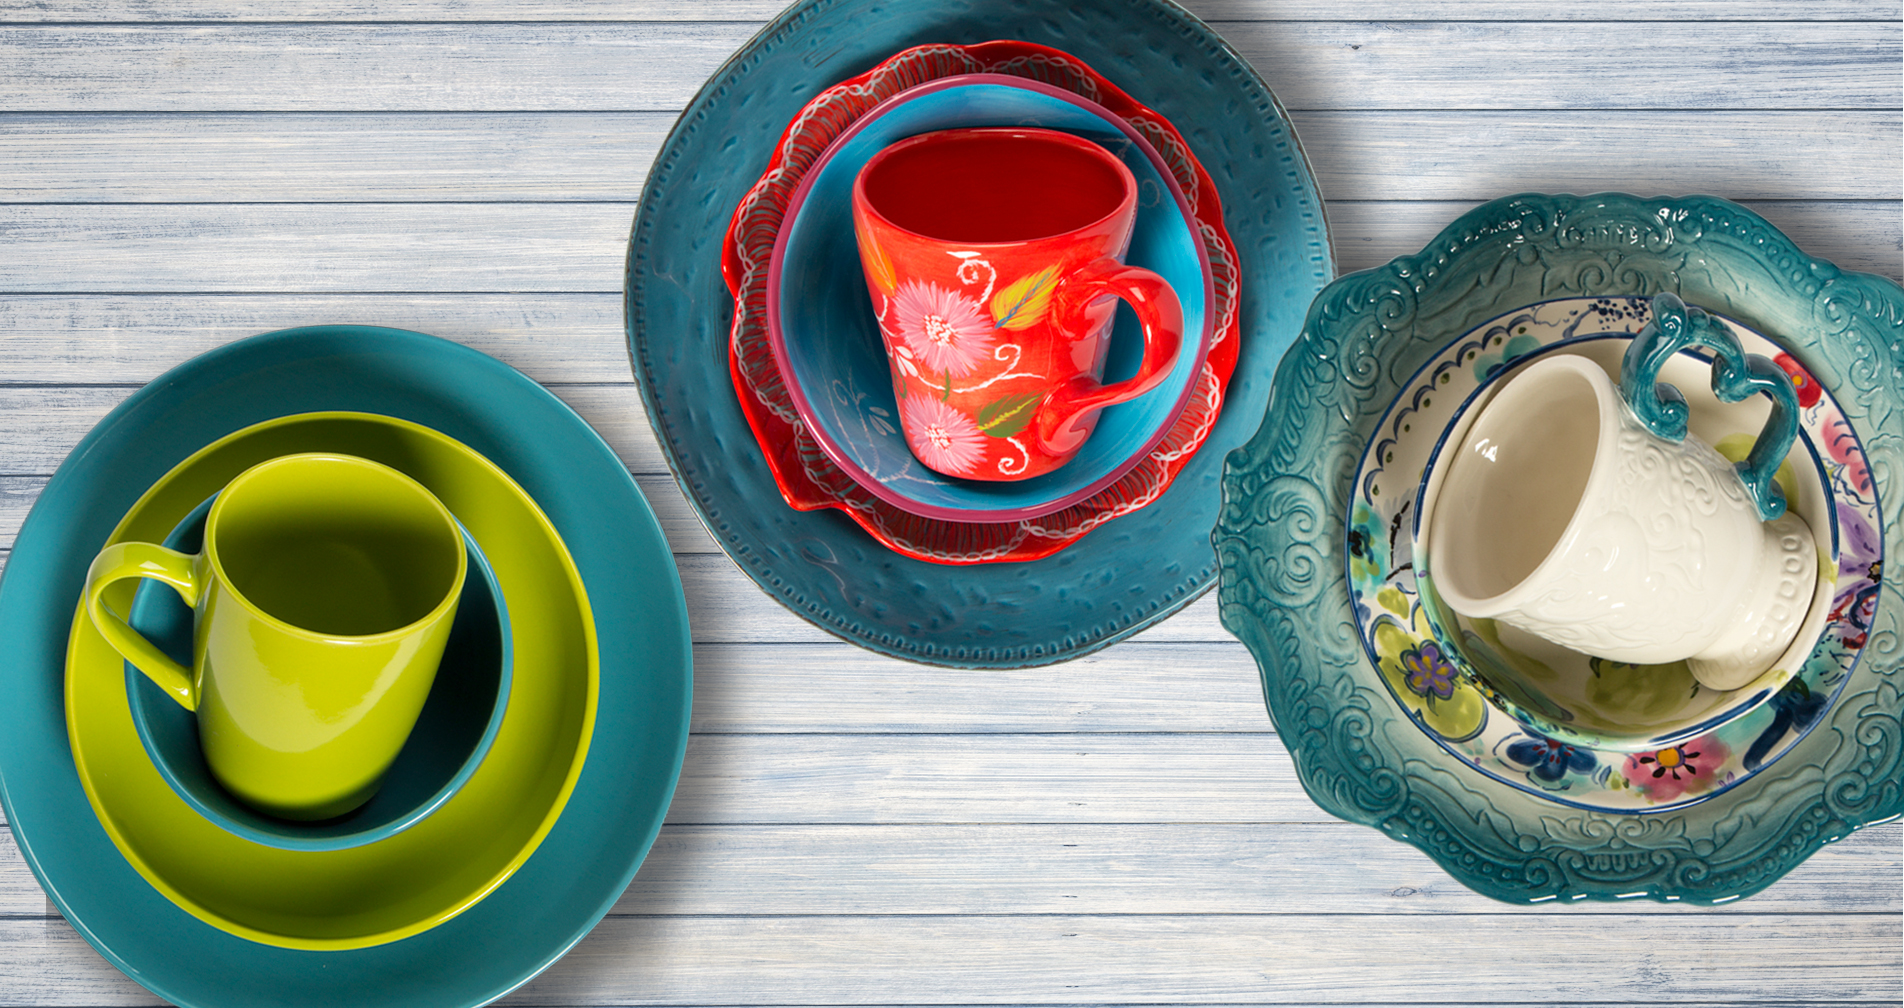 serve  ttu serveware  dinnerware sets - mix  match solid colors patterns and materials for settings that areuniquely you